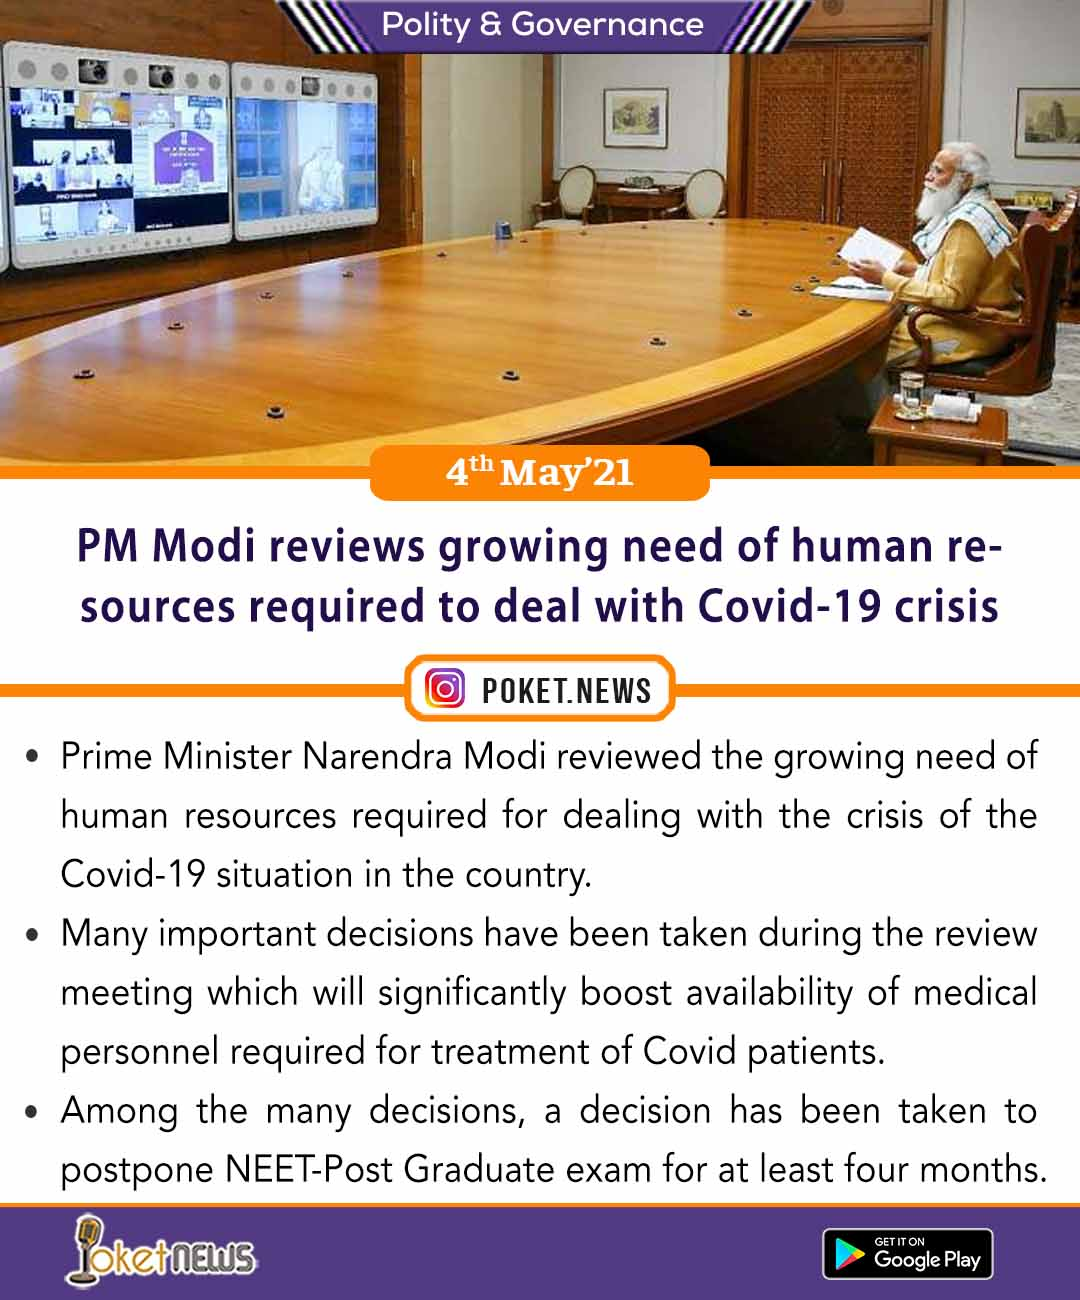 PM Modi reviews growing need of human resources required to deal with Covid-19 crisis